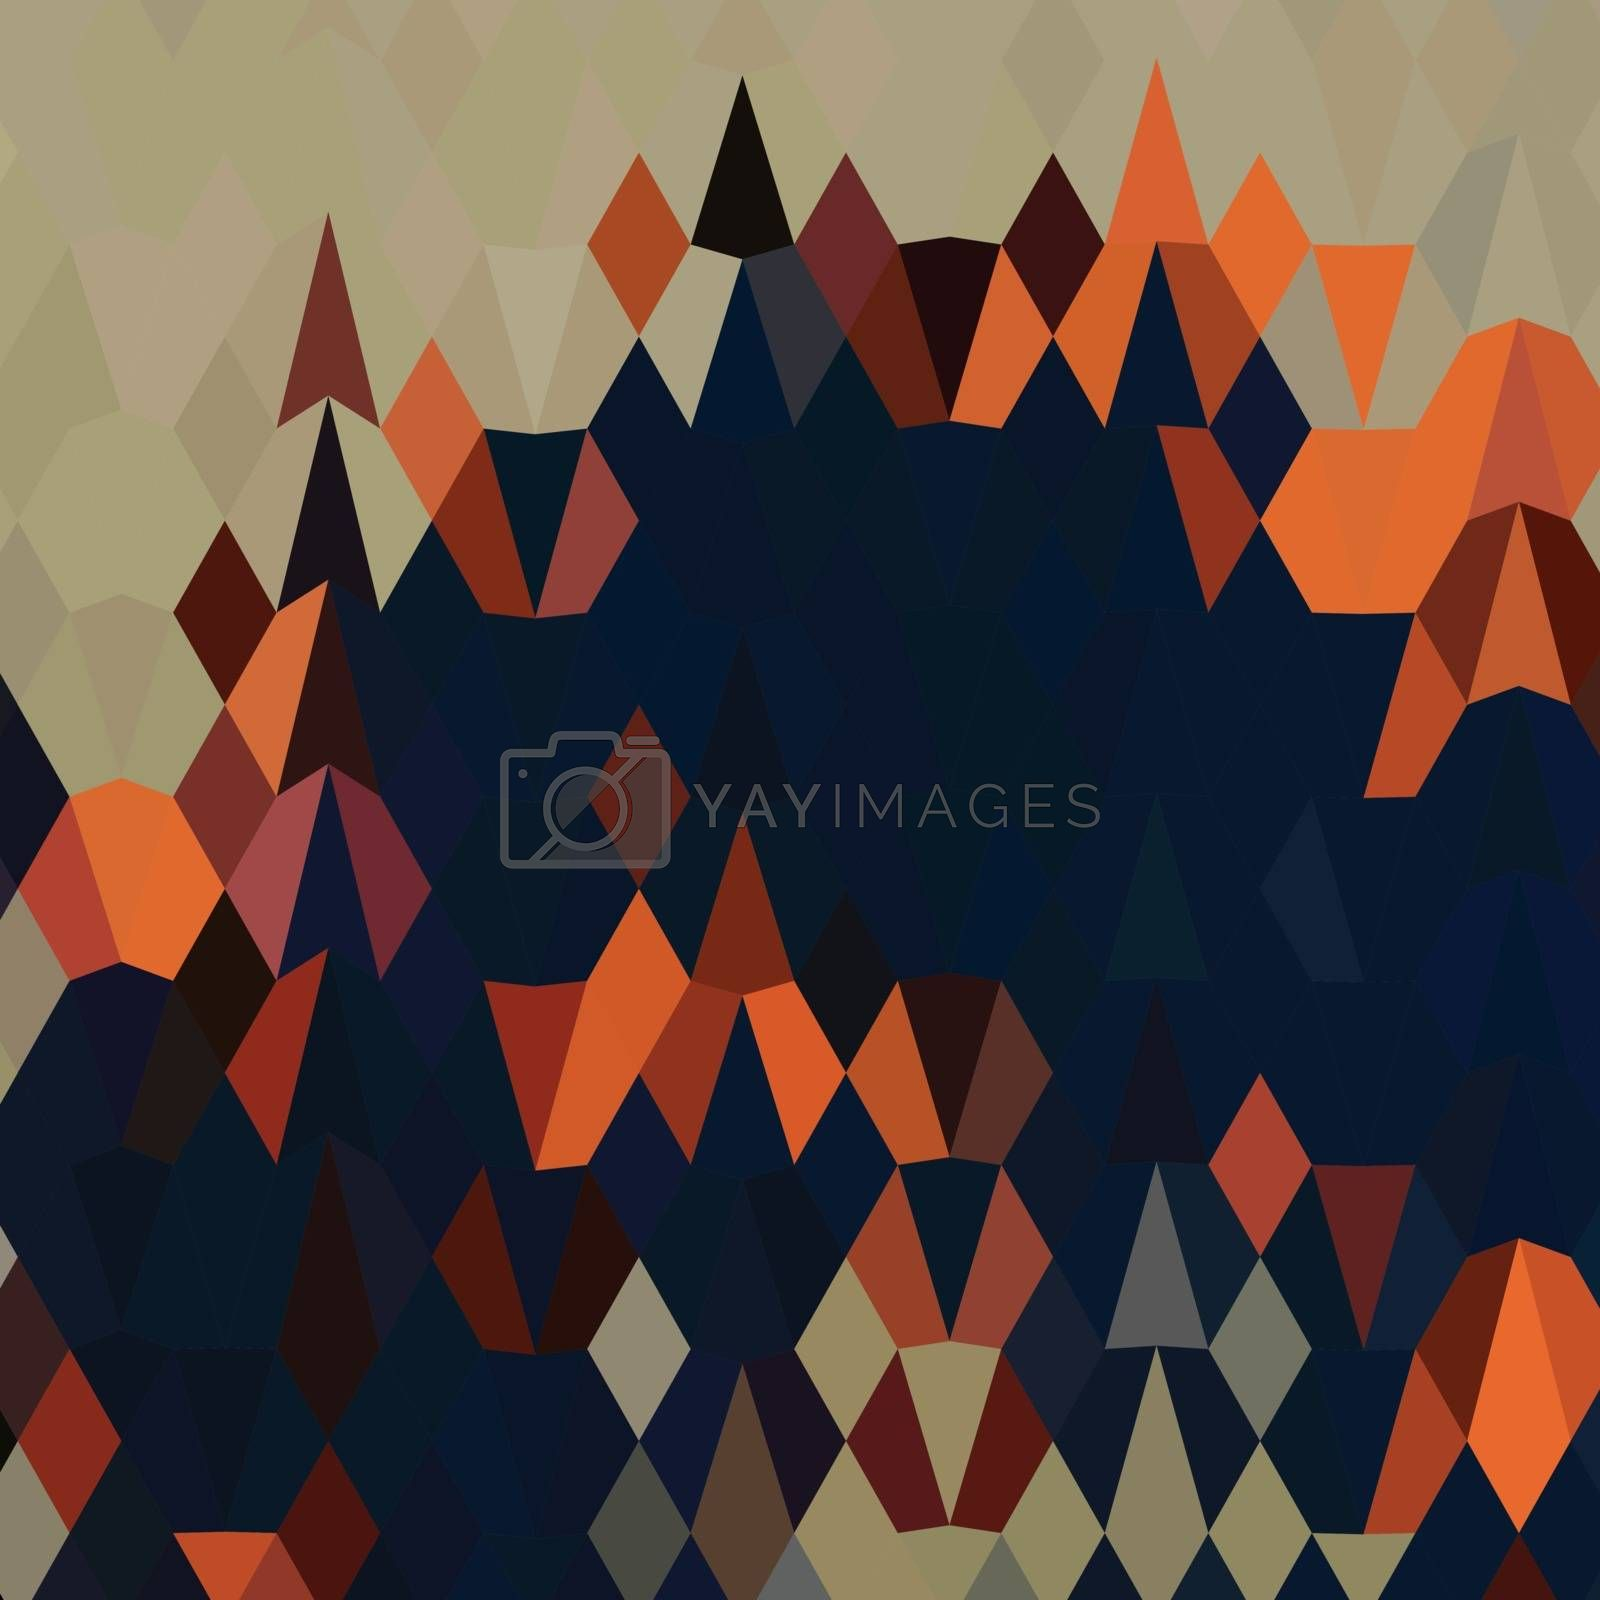 Low polygon style illustration of orange blue abstract background.